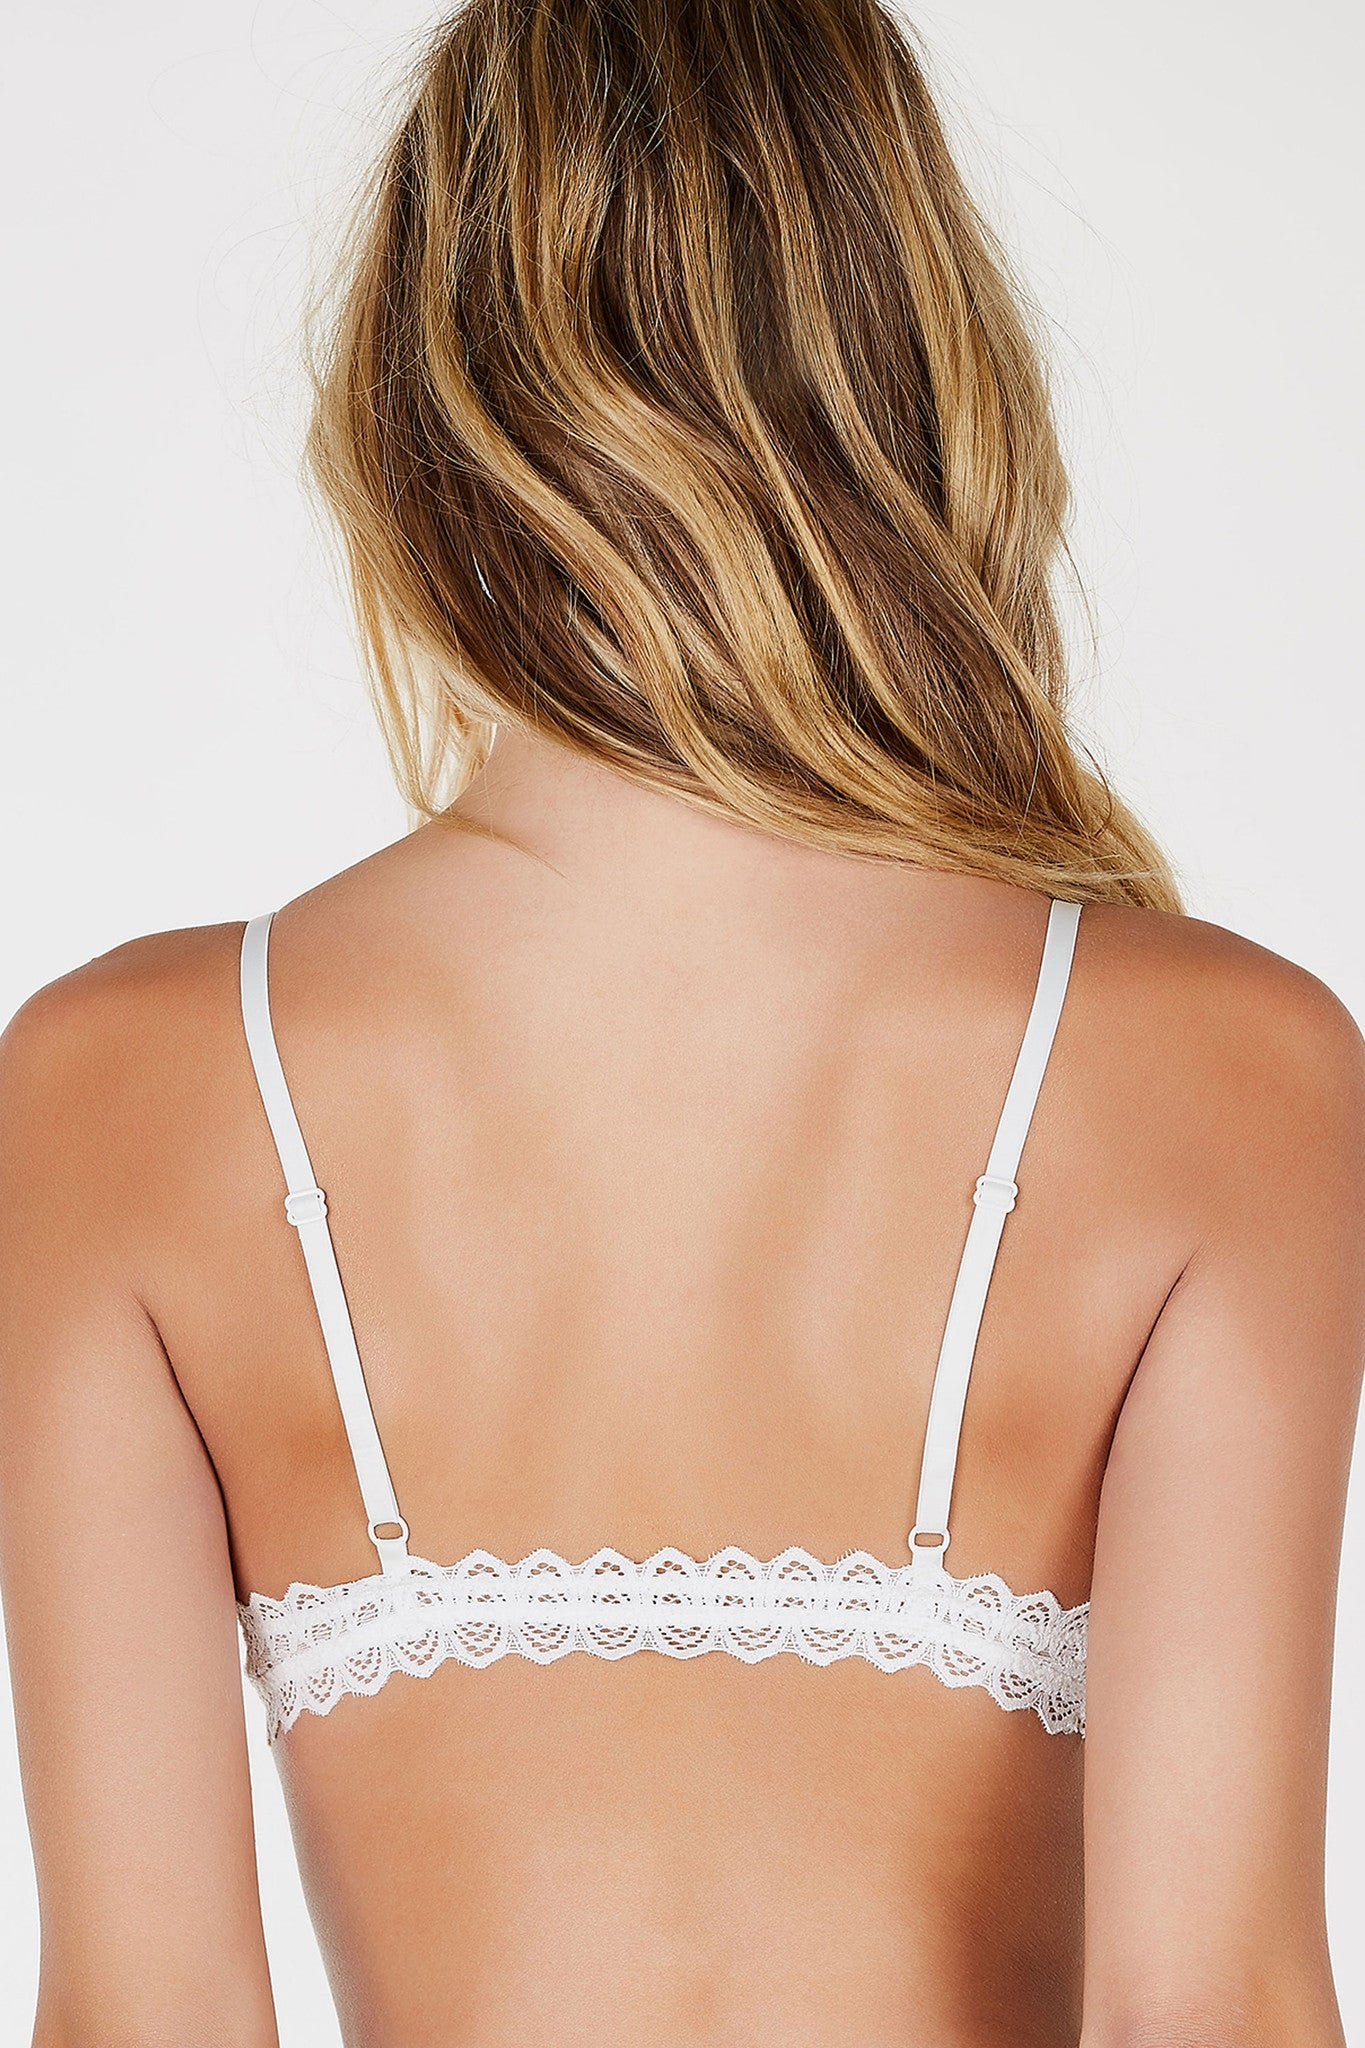 A delicate lace bralette, perfect to layer underneat deep cut tees or sheer tops. Dainty shoulder straps adjustable for fit. Elasticized, stretchy material all around for extra comfort